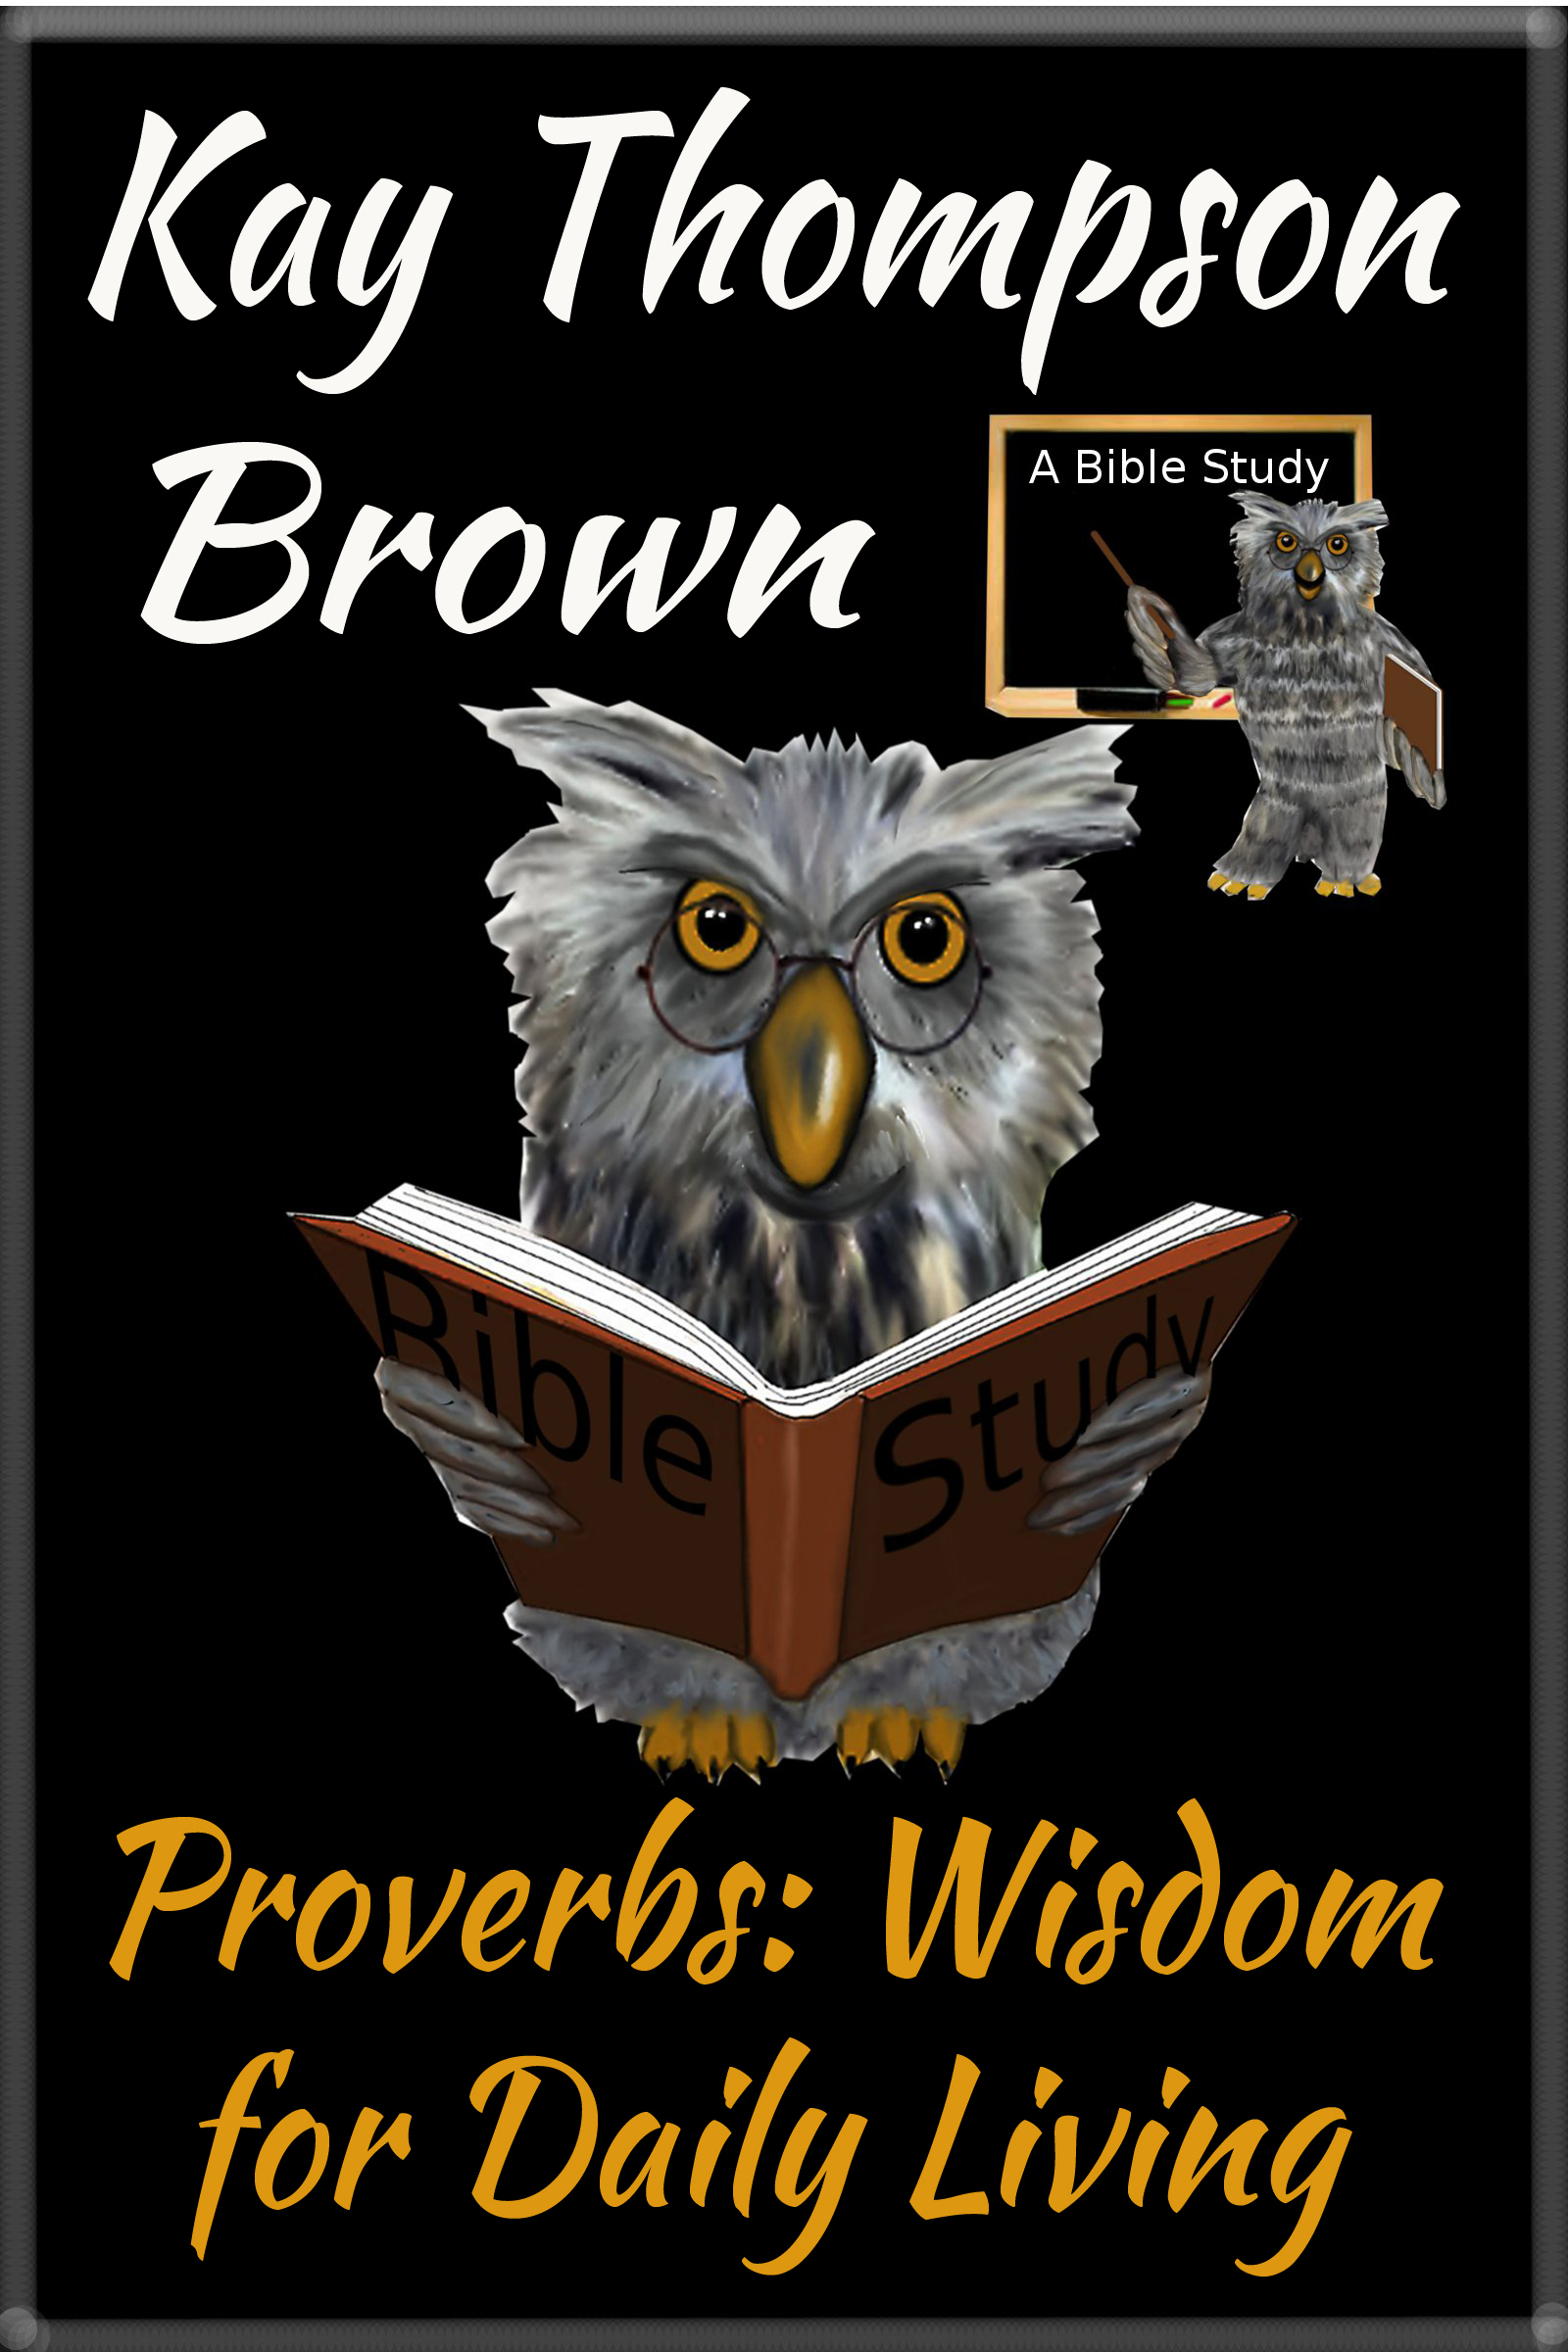 Proverbs: Wisdom for Daily Living